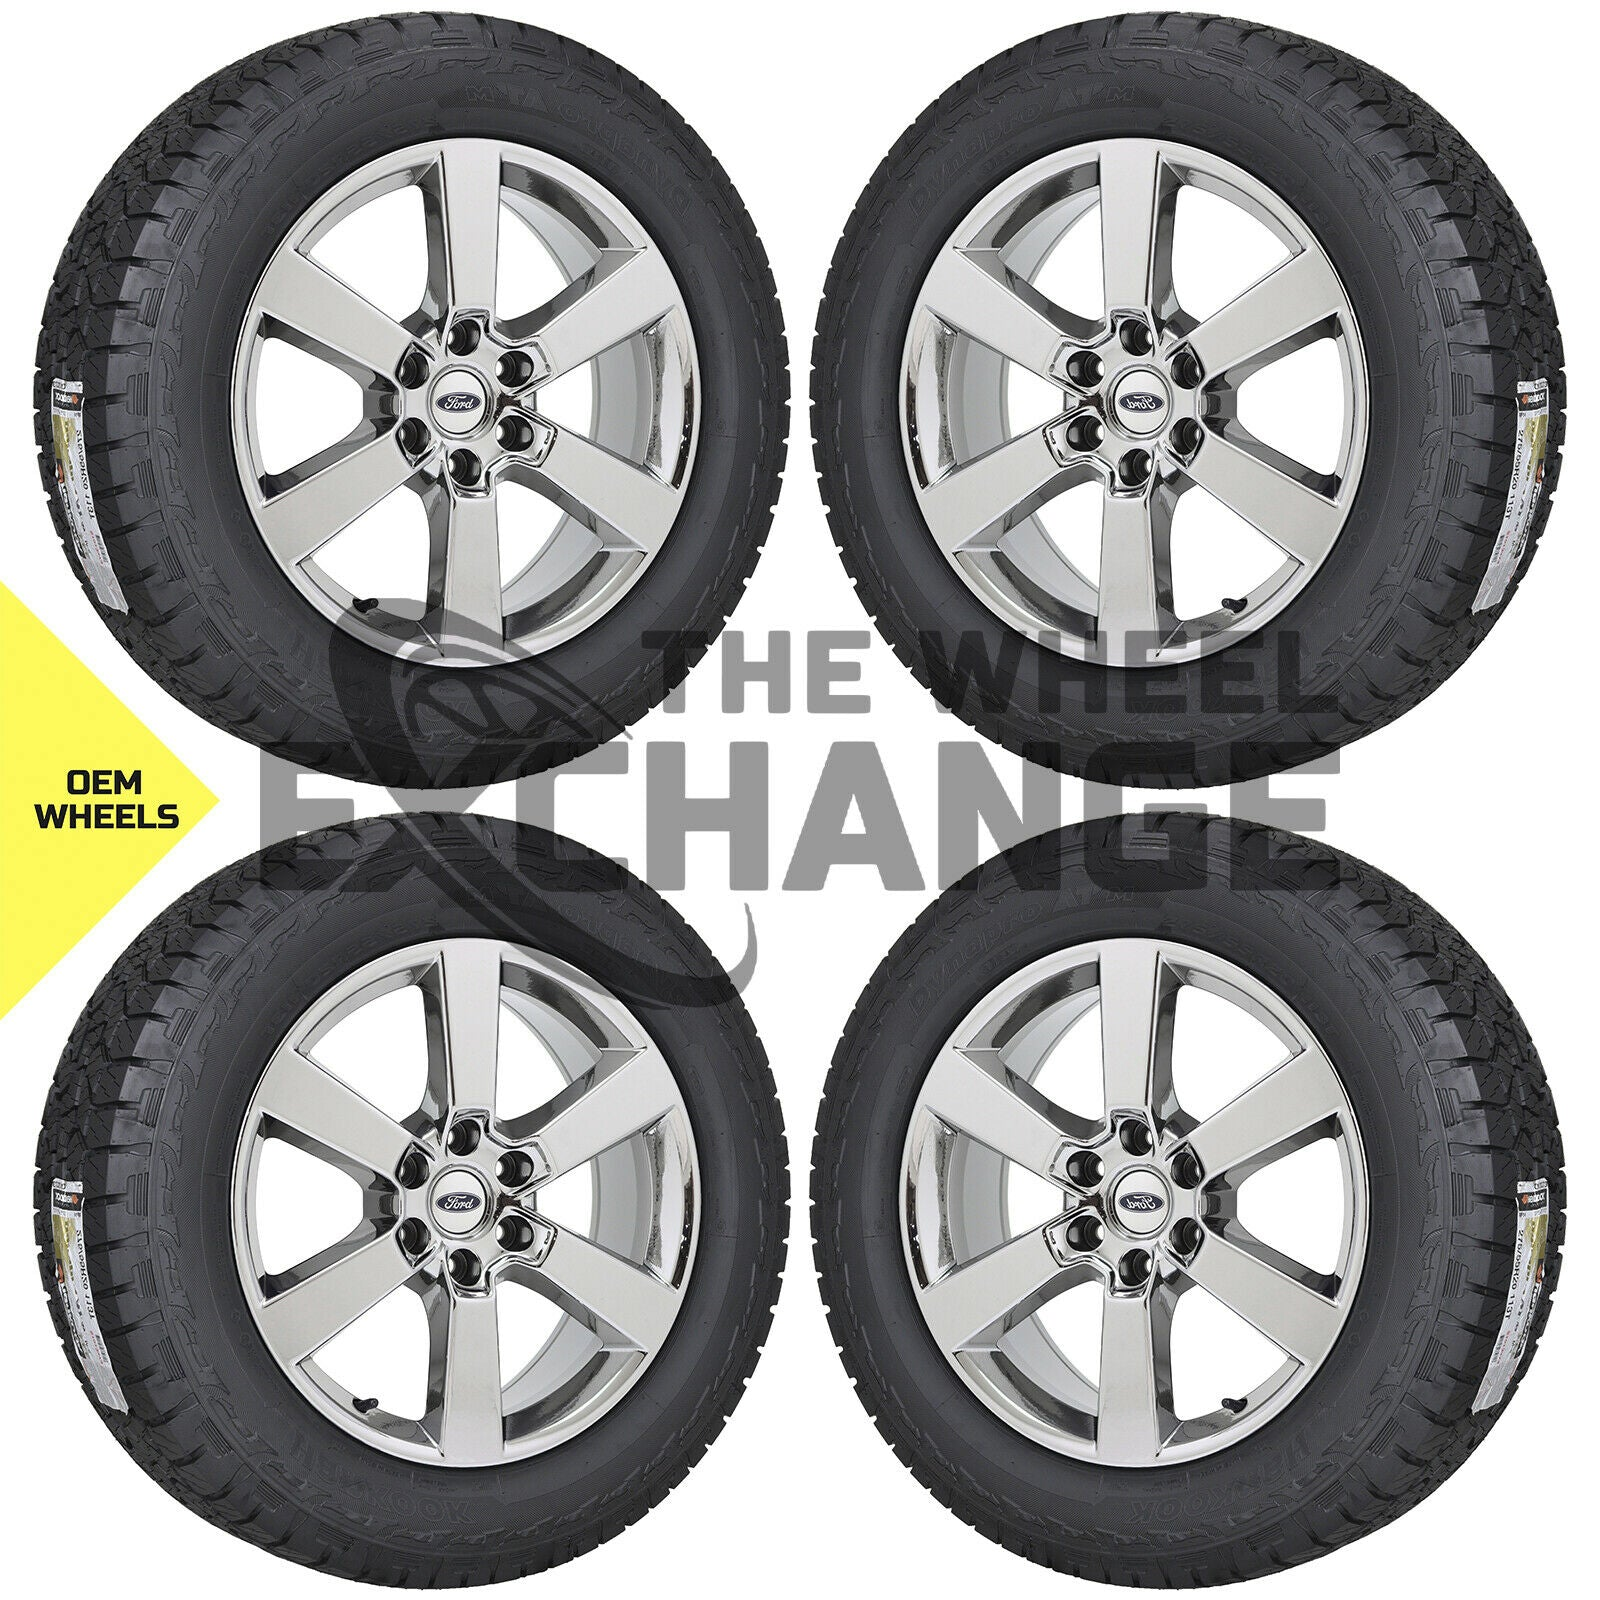 20 Ford F150 Truck Pvd Chrome Wheels Rims Tires Factory Oem Set 4 100 The Wheel Exchange